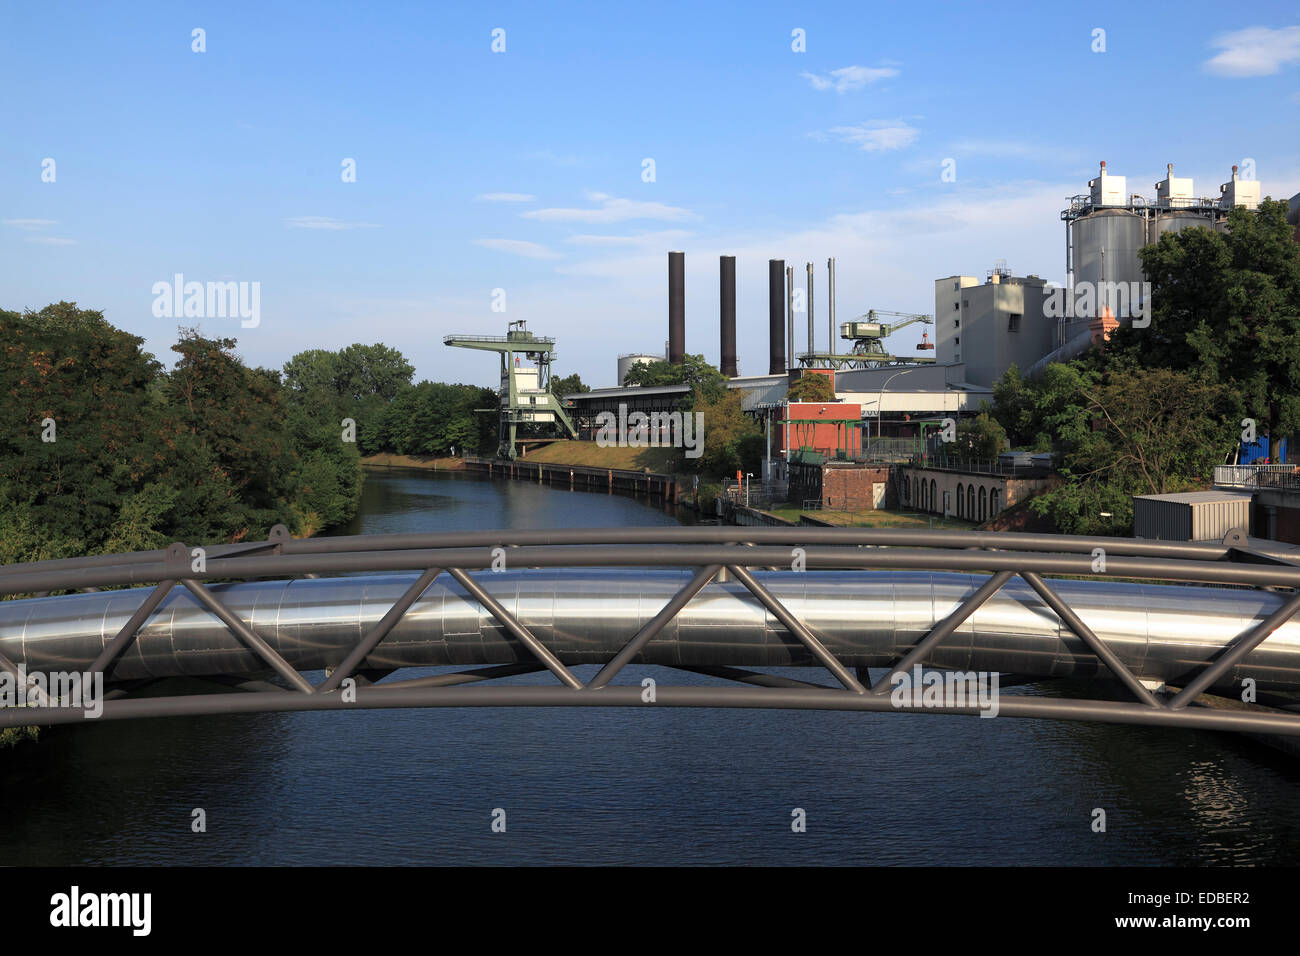 district heating pipeline on a pipeline bridge over the stock photo royalty free image. Black Bedroom Furniture Sets. Home Design Ideas